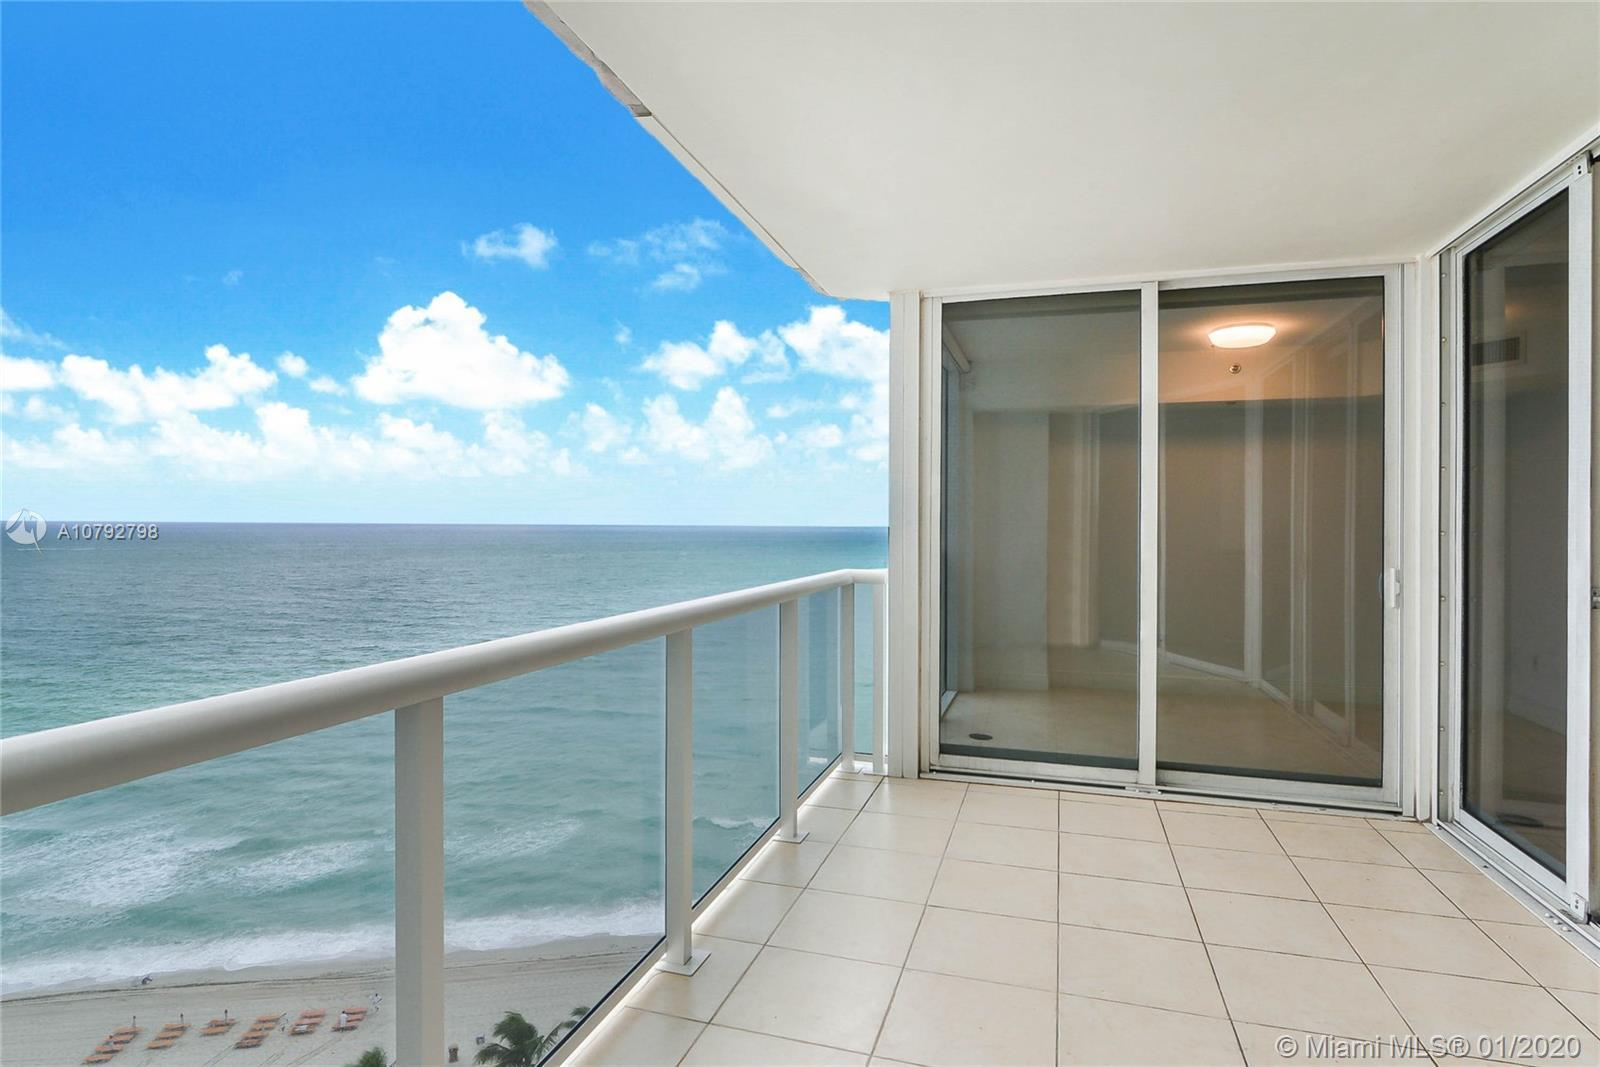 Ocean Two Condo in Sunny Isles Beach offering 2 Bedrooms and 2.5 bathrooms with stunning Direct Ocea